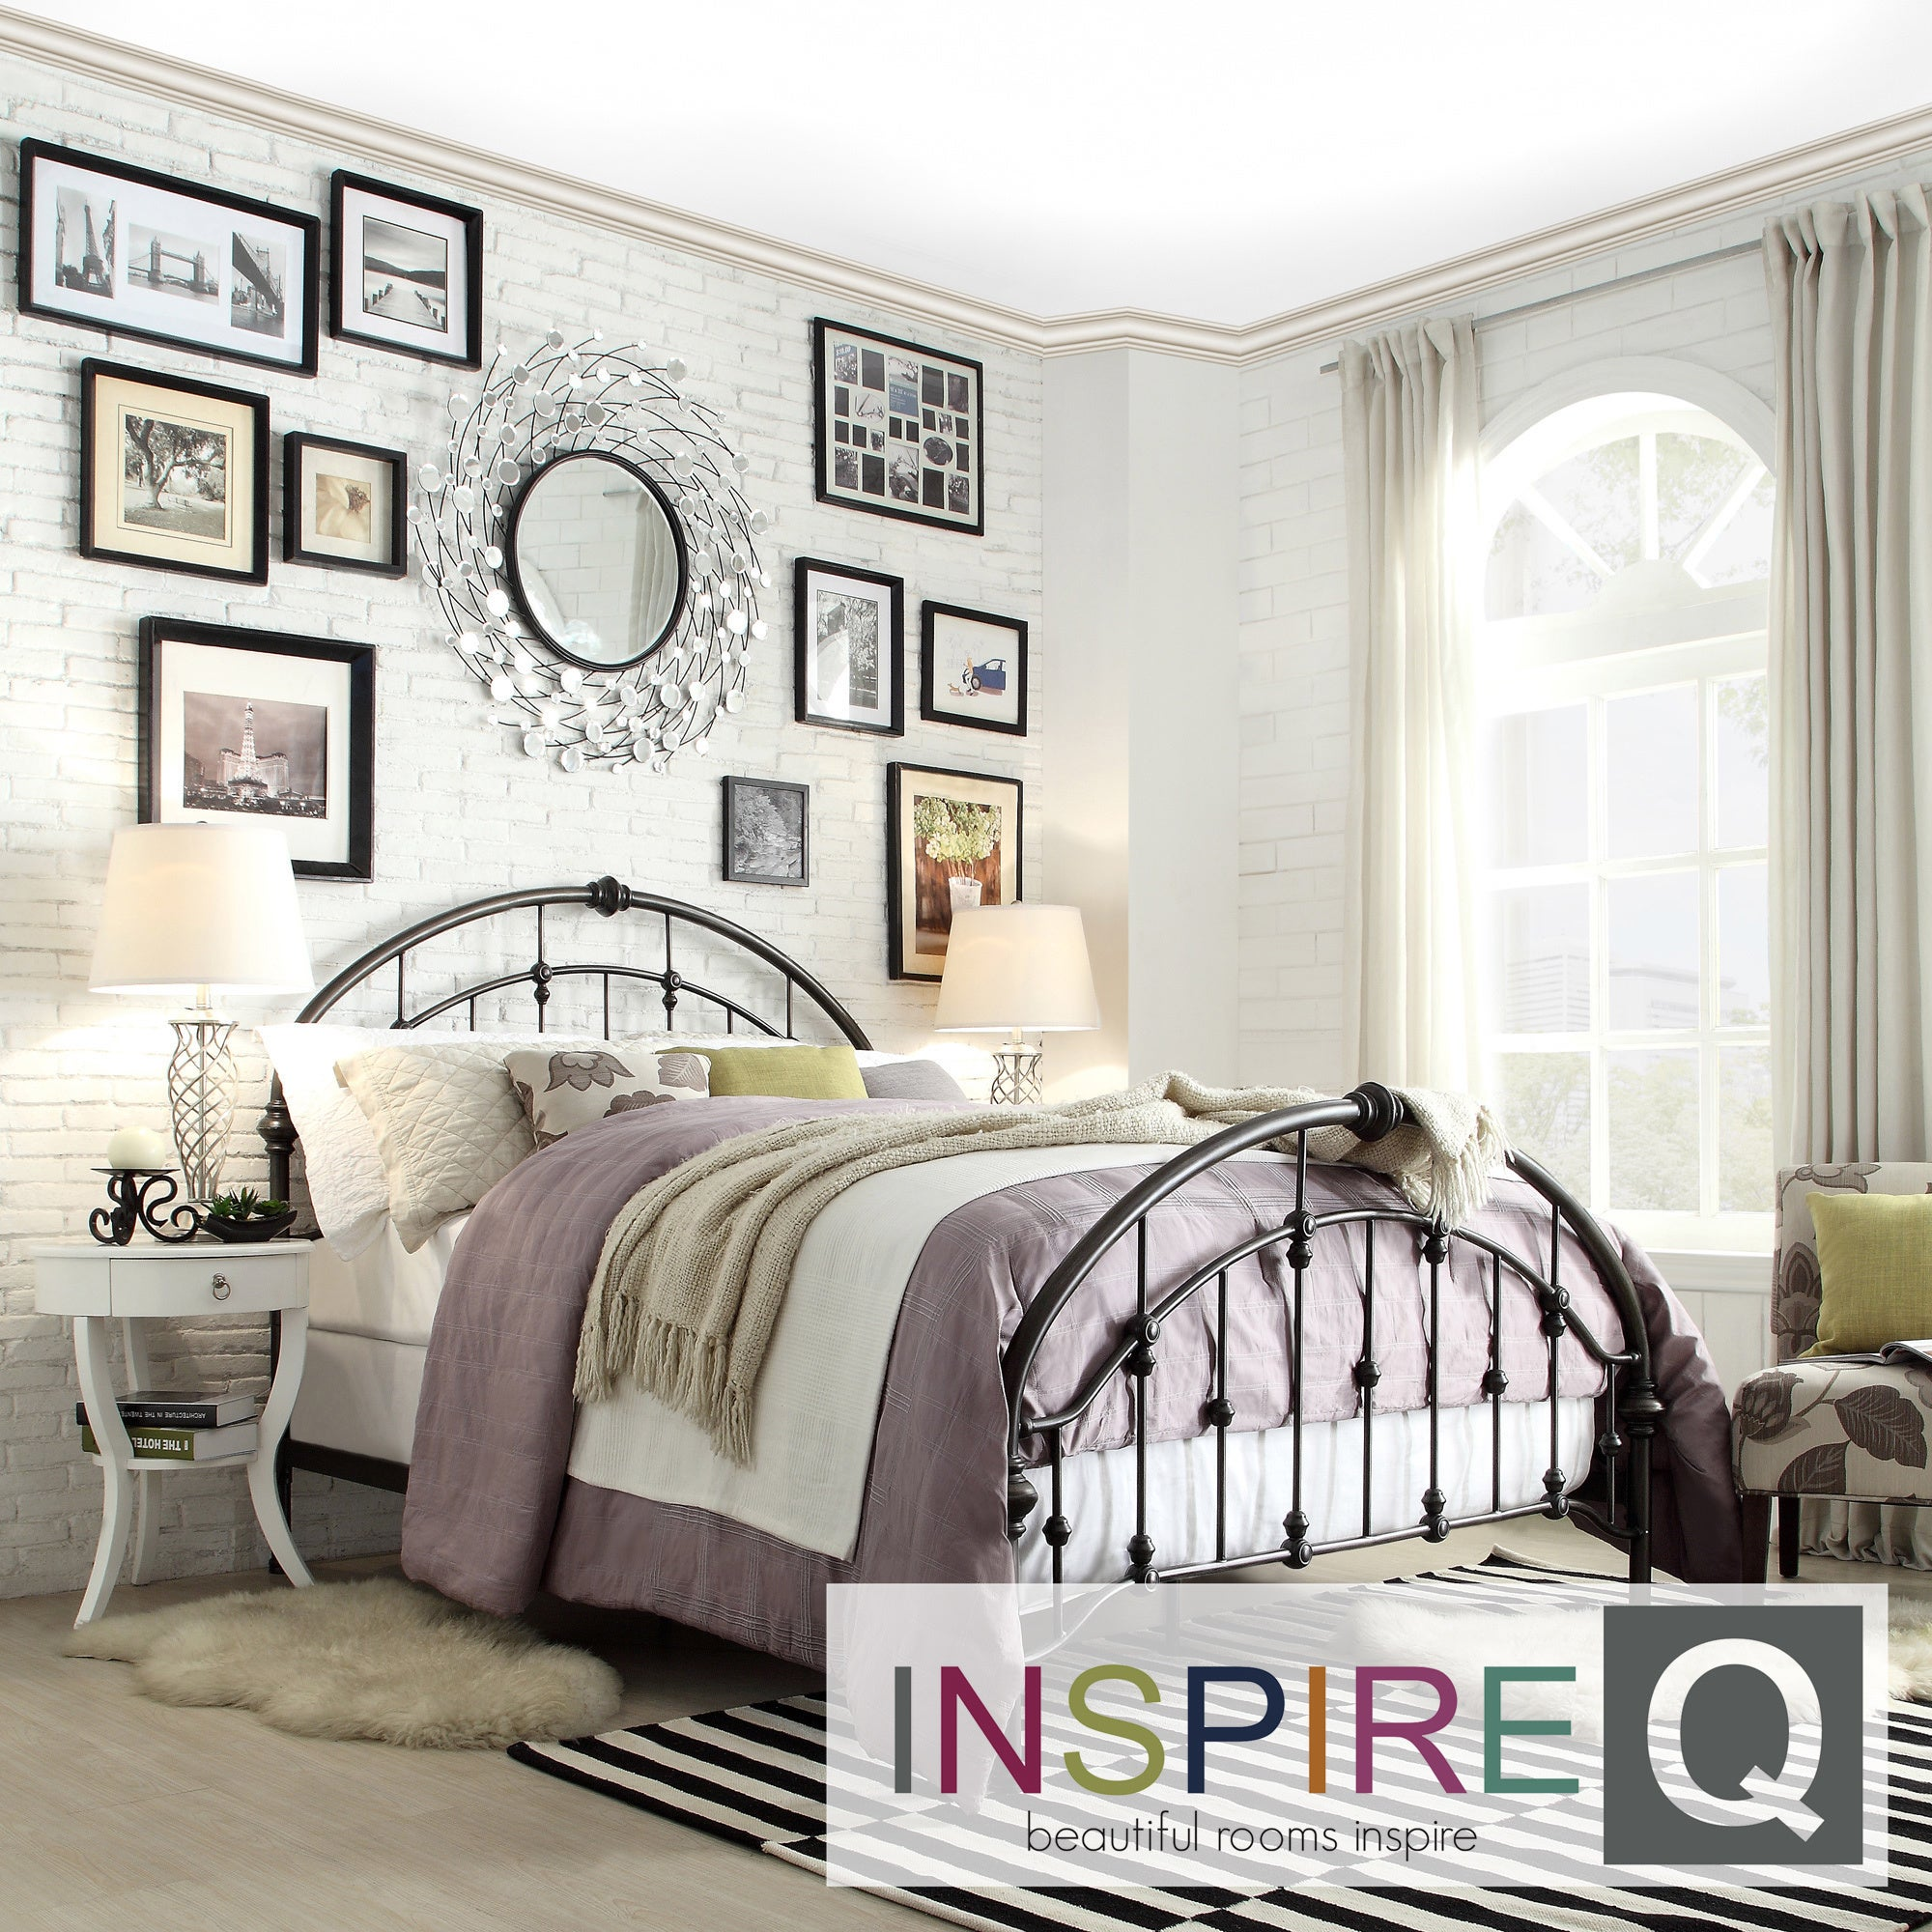 Inspire Q Lamar Round Curved Double Top Arches Victorian Iron Metal Bed